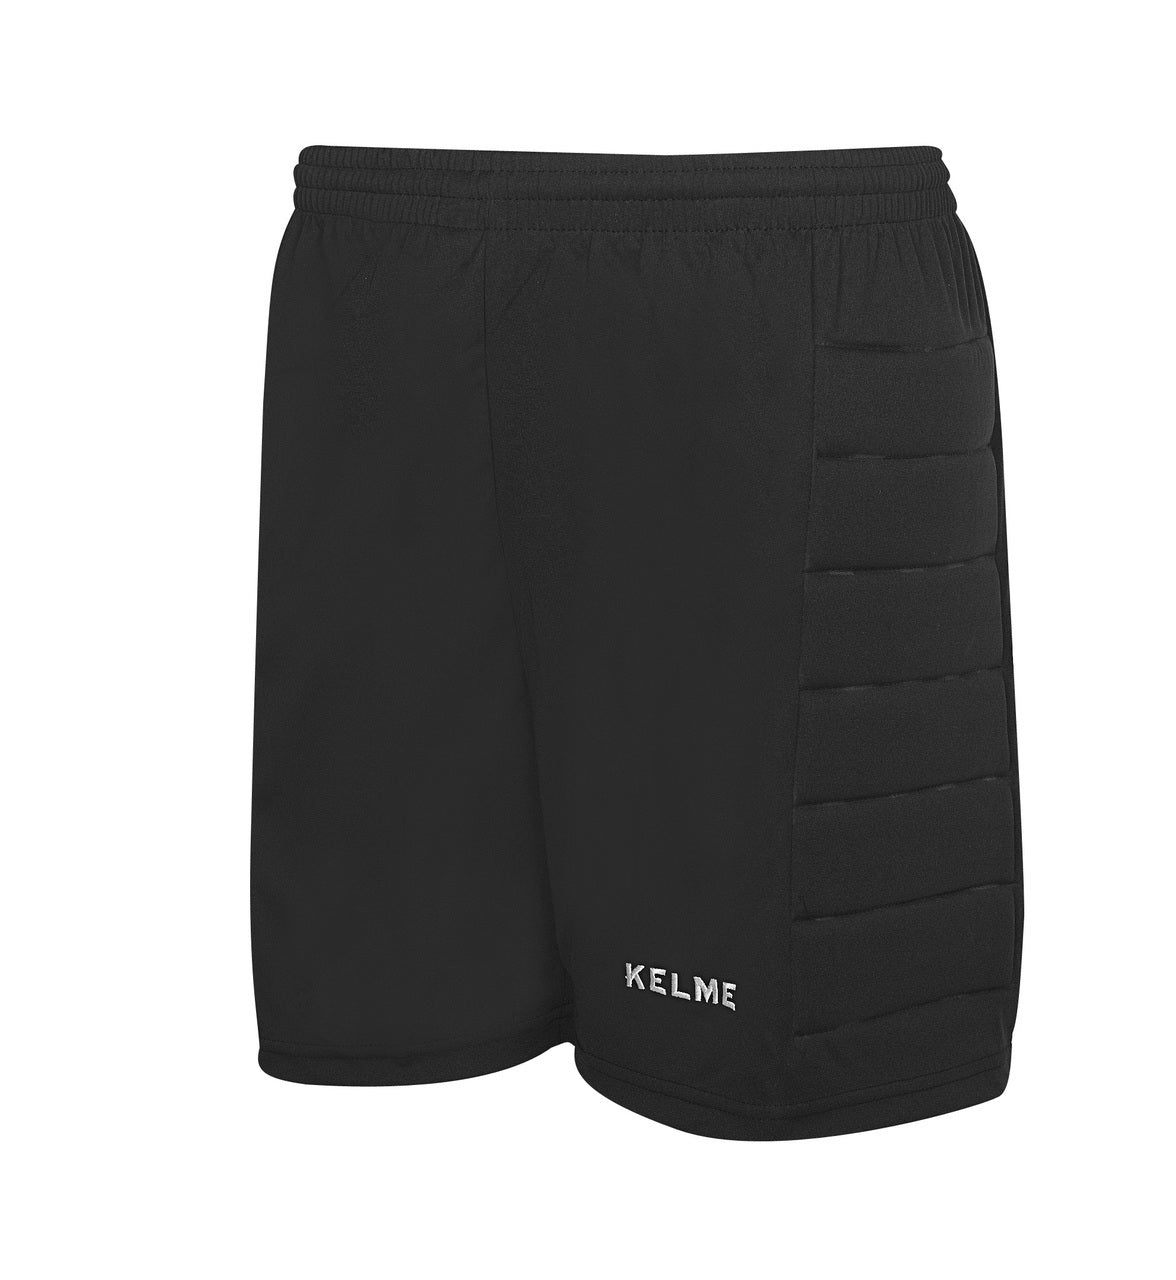 Kelme Attack Padded Goalkeeper Shorts - Black